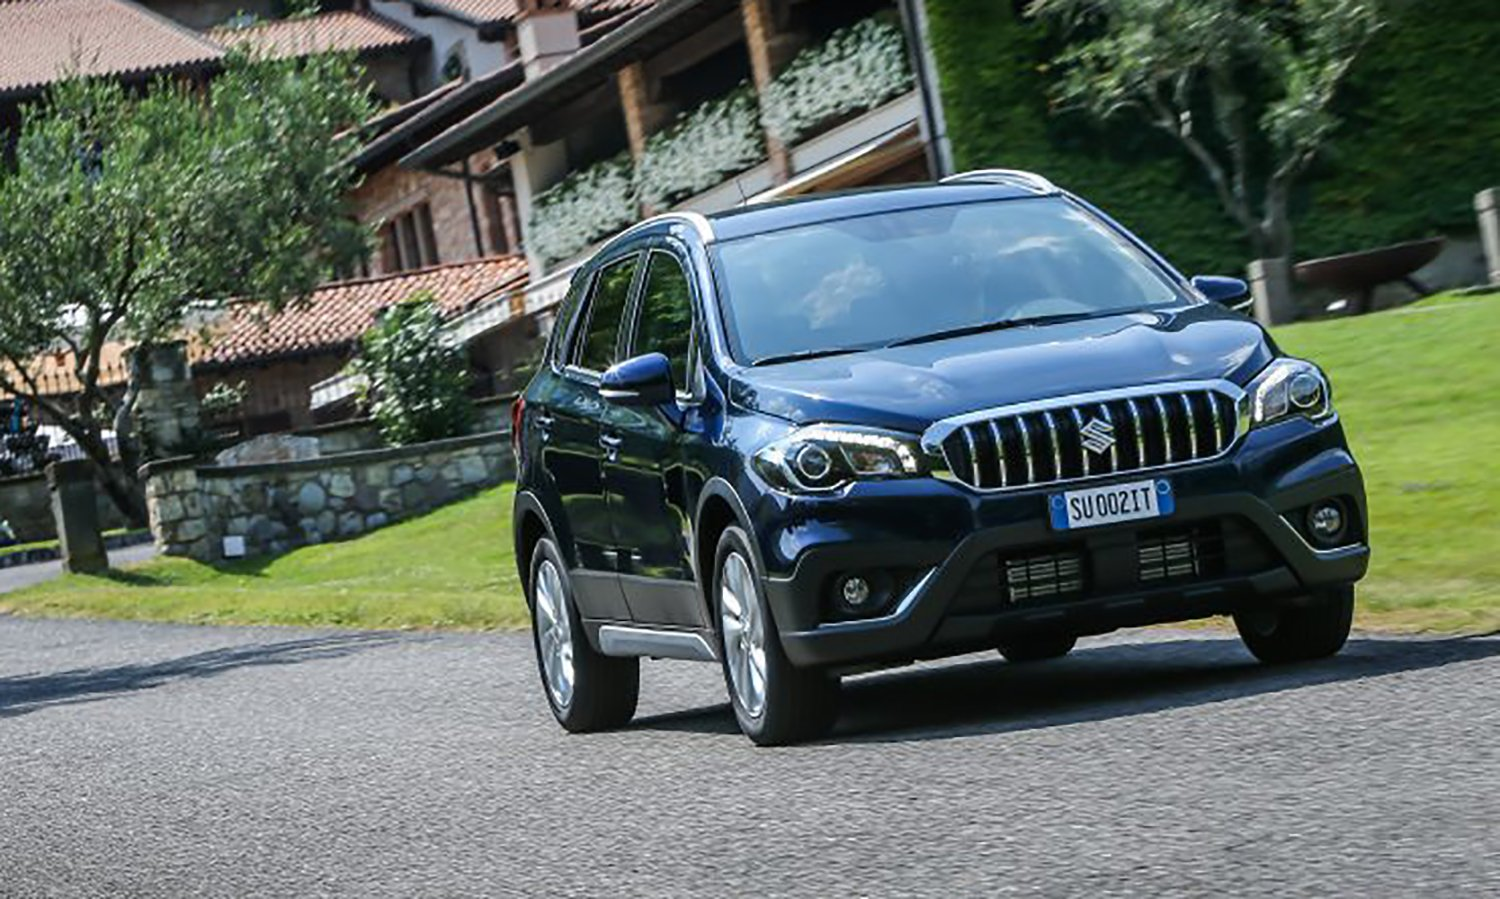 2017 suzuki s cross facelift revealed ahead of paris debut. Black Bedroom Furniture Sets. Home Design Ideas